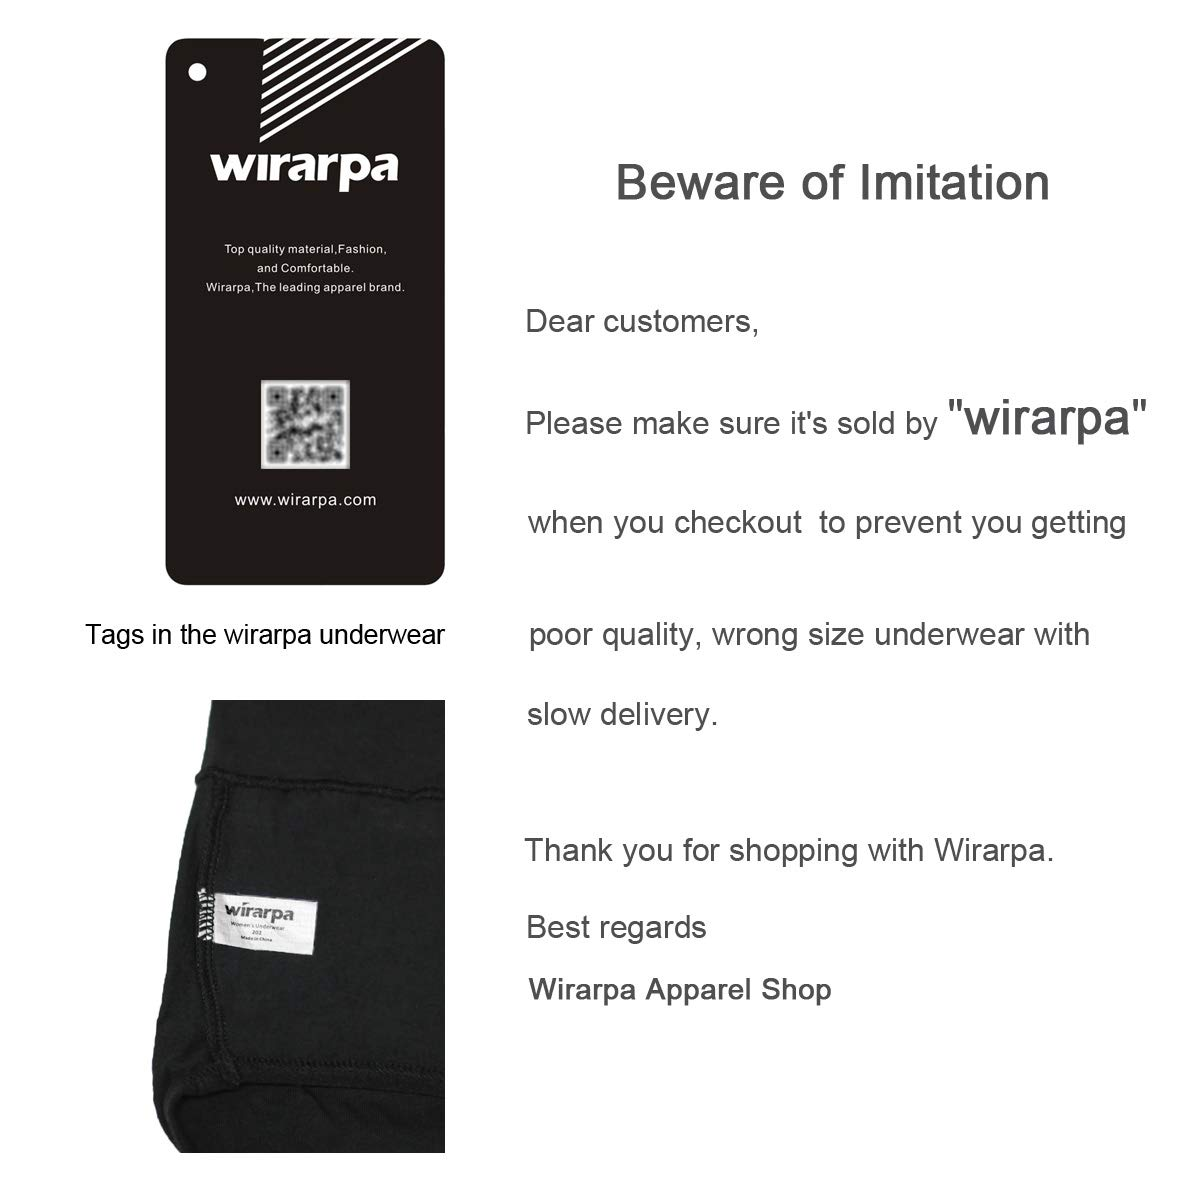 wirarpa Womens Cotton Stretch Underwear Briefs Soft Mid Rise Ladies Hipster Panties Multipack